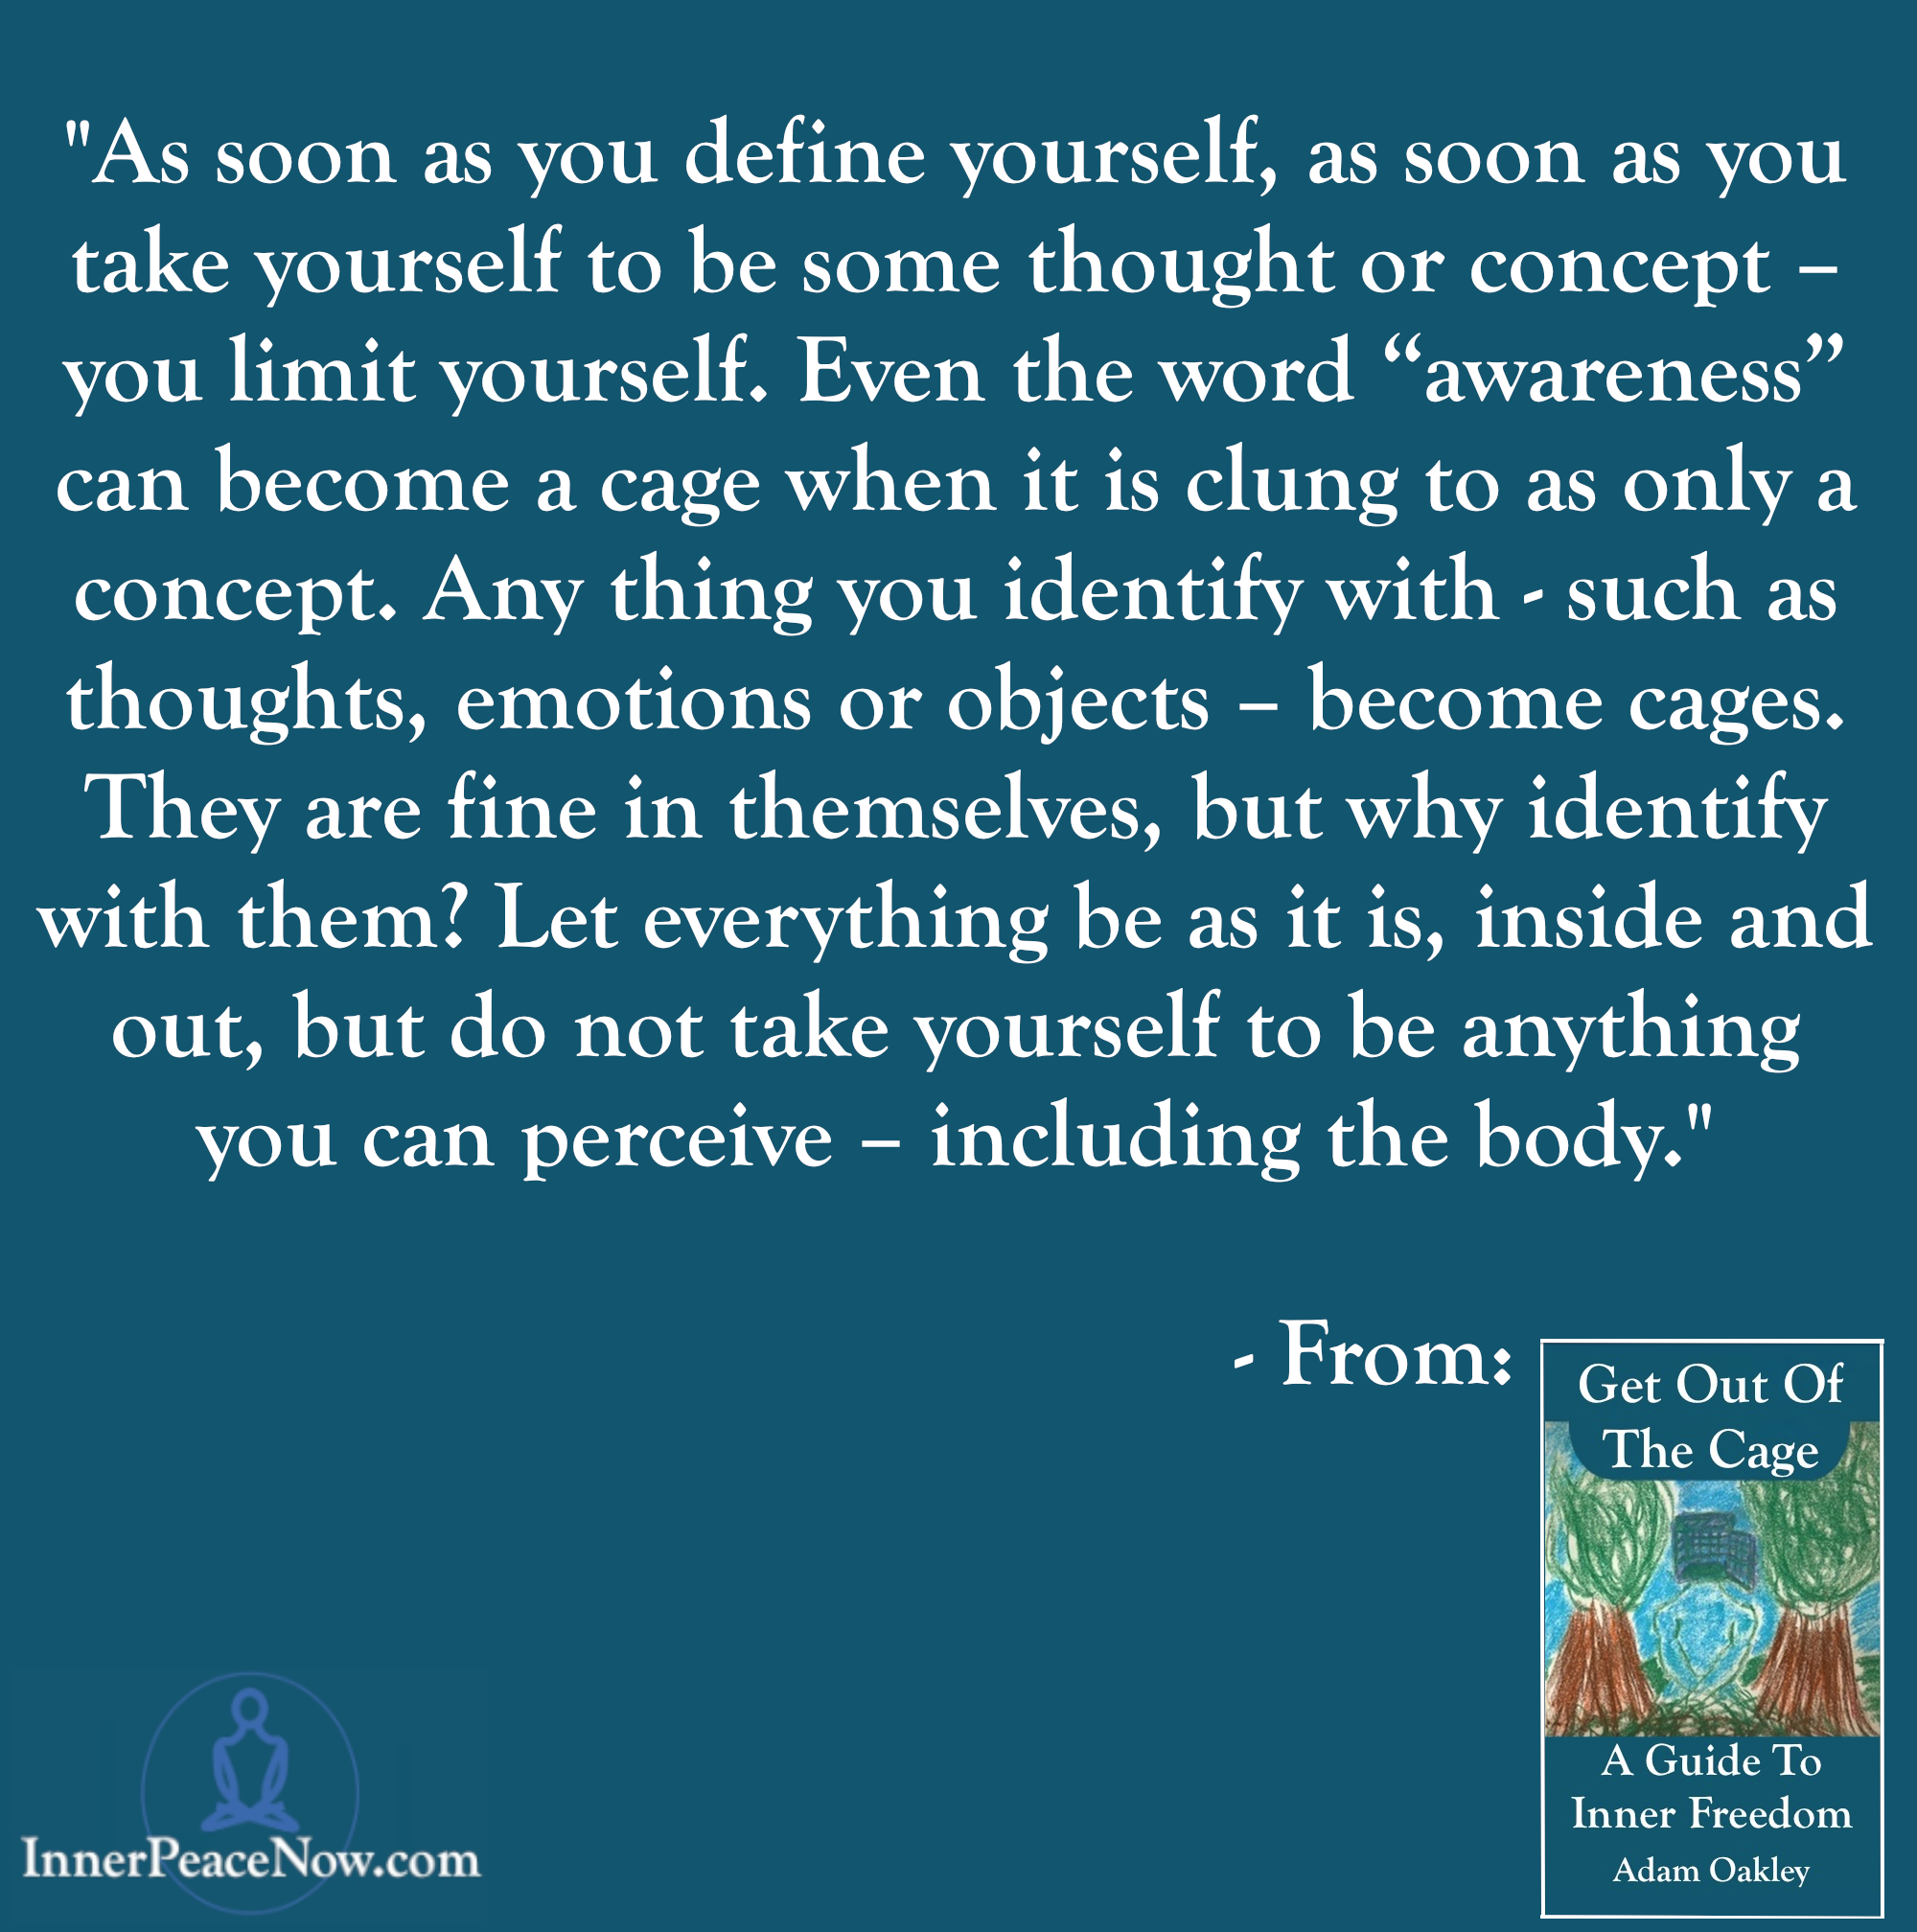 Defining Yourself - Get Out Of The Cage Quote